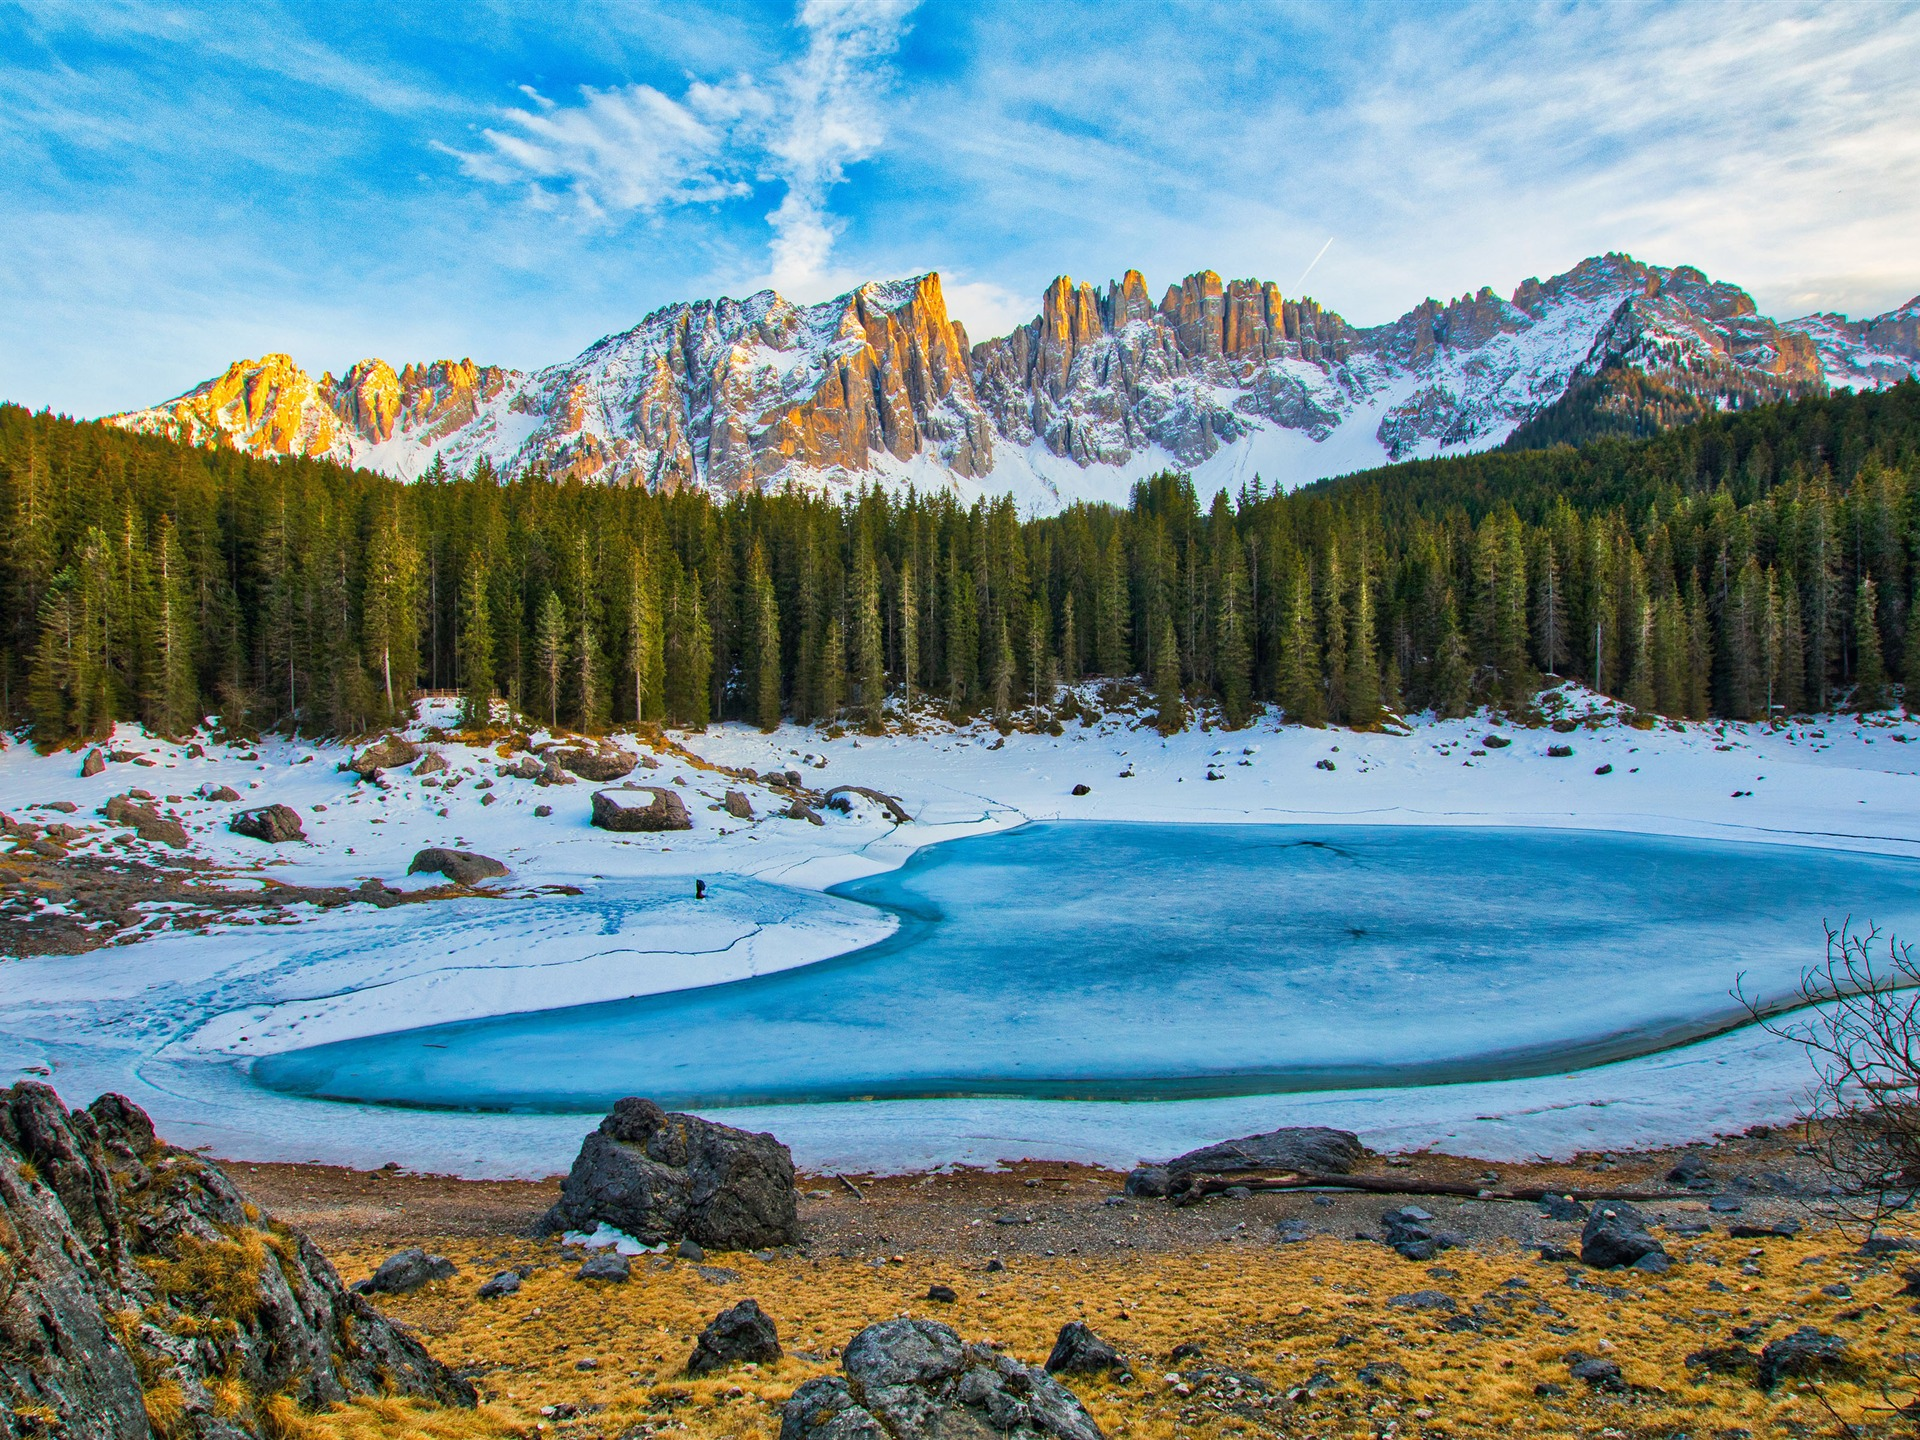 Winter jungle snow mountains frozen lake - 1920x1440 wallpaper download